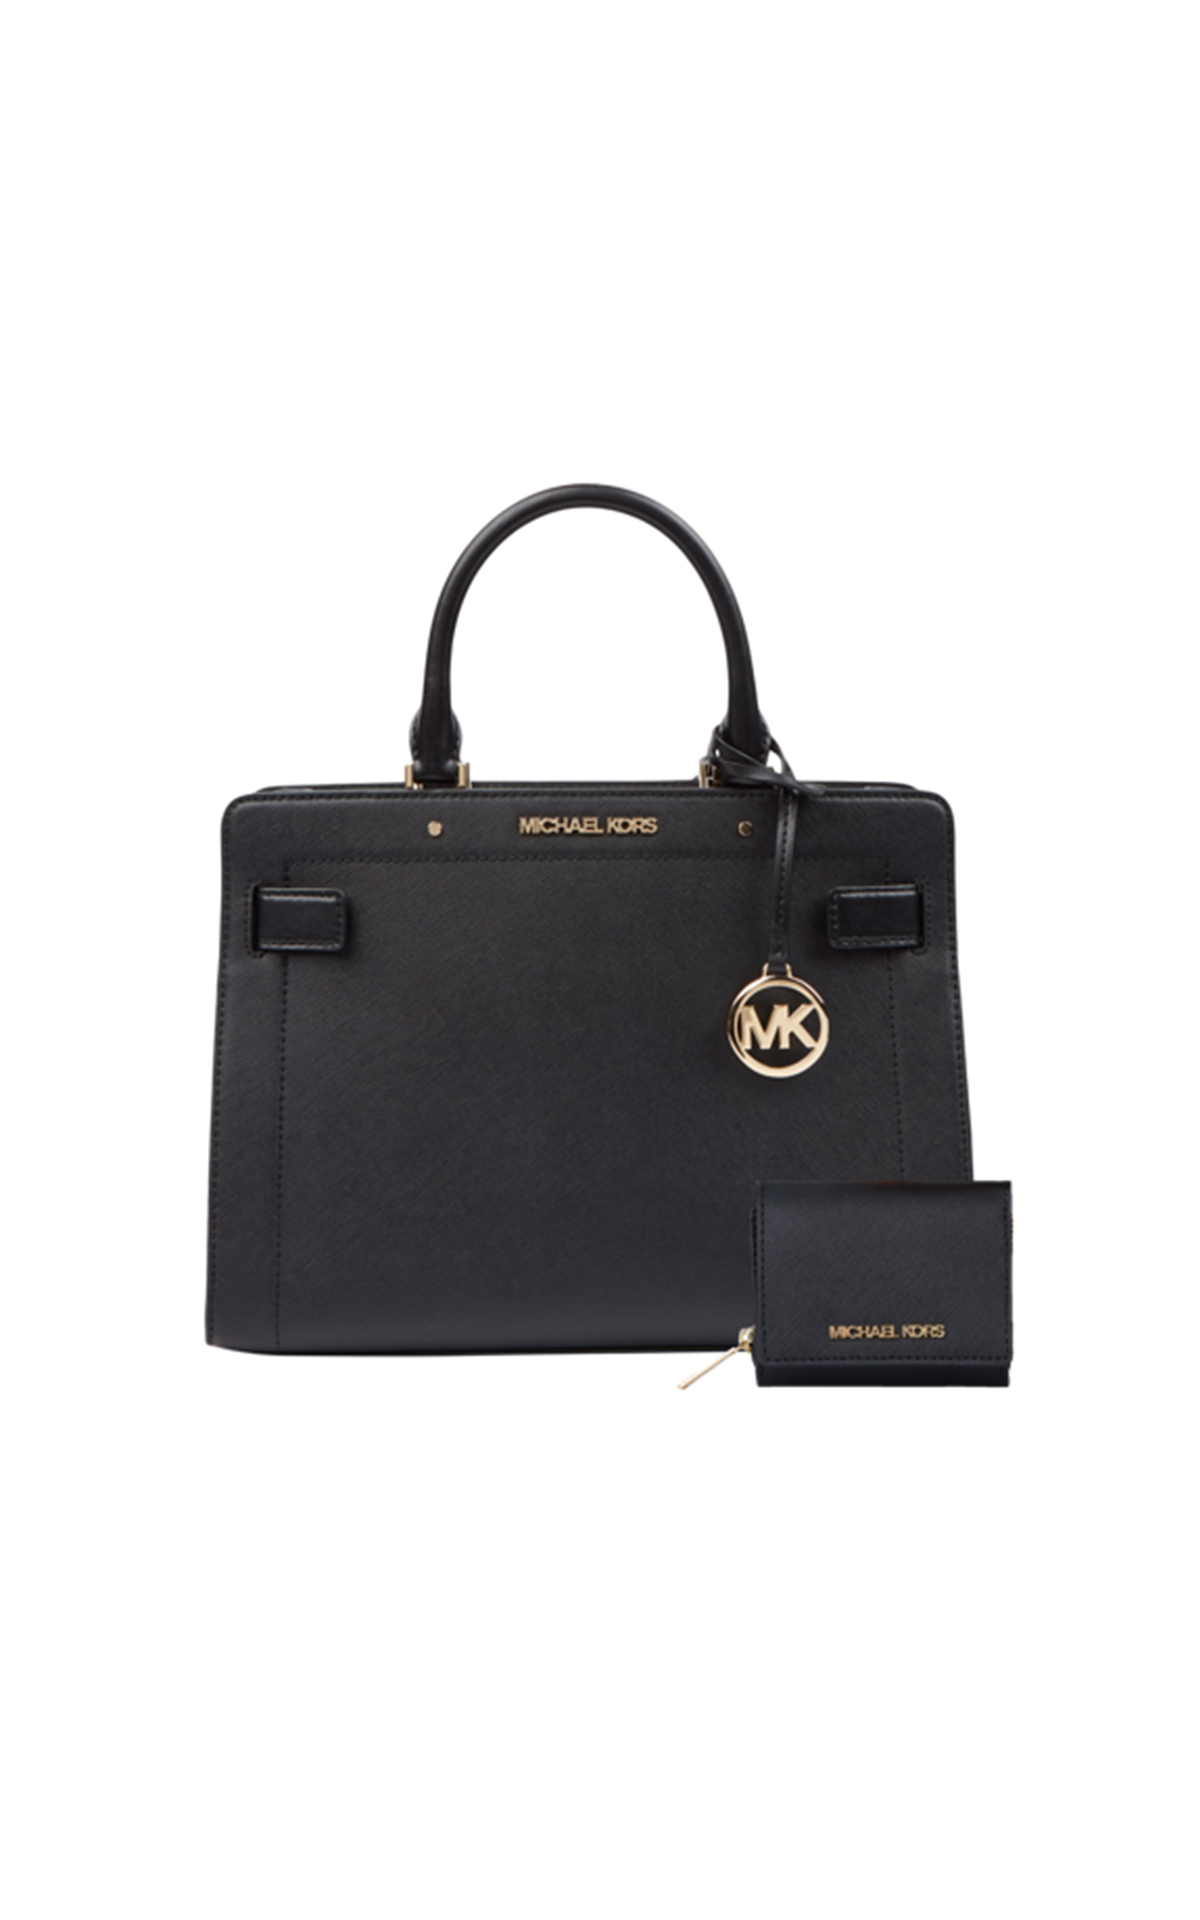 Michael Kors Rayne handbag & wallet at The Bicester Village Shopping Collection